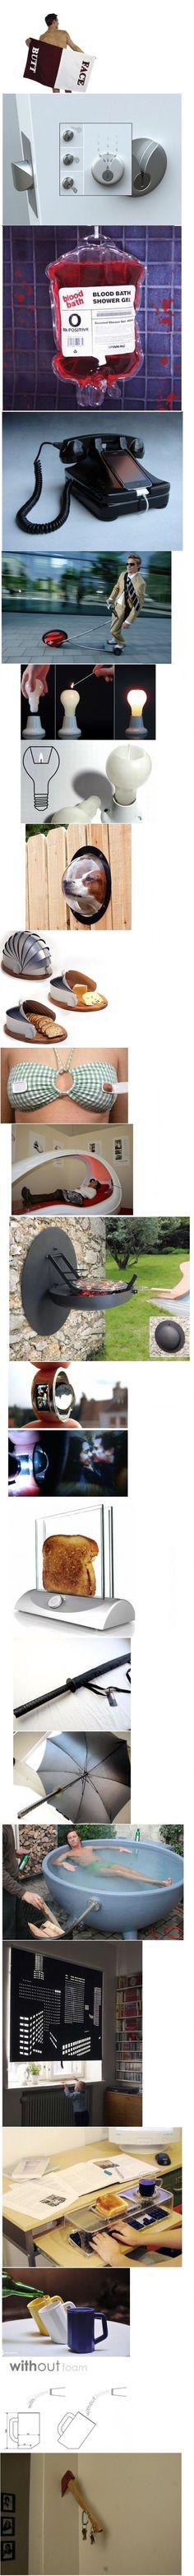 cool & weird inventions